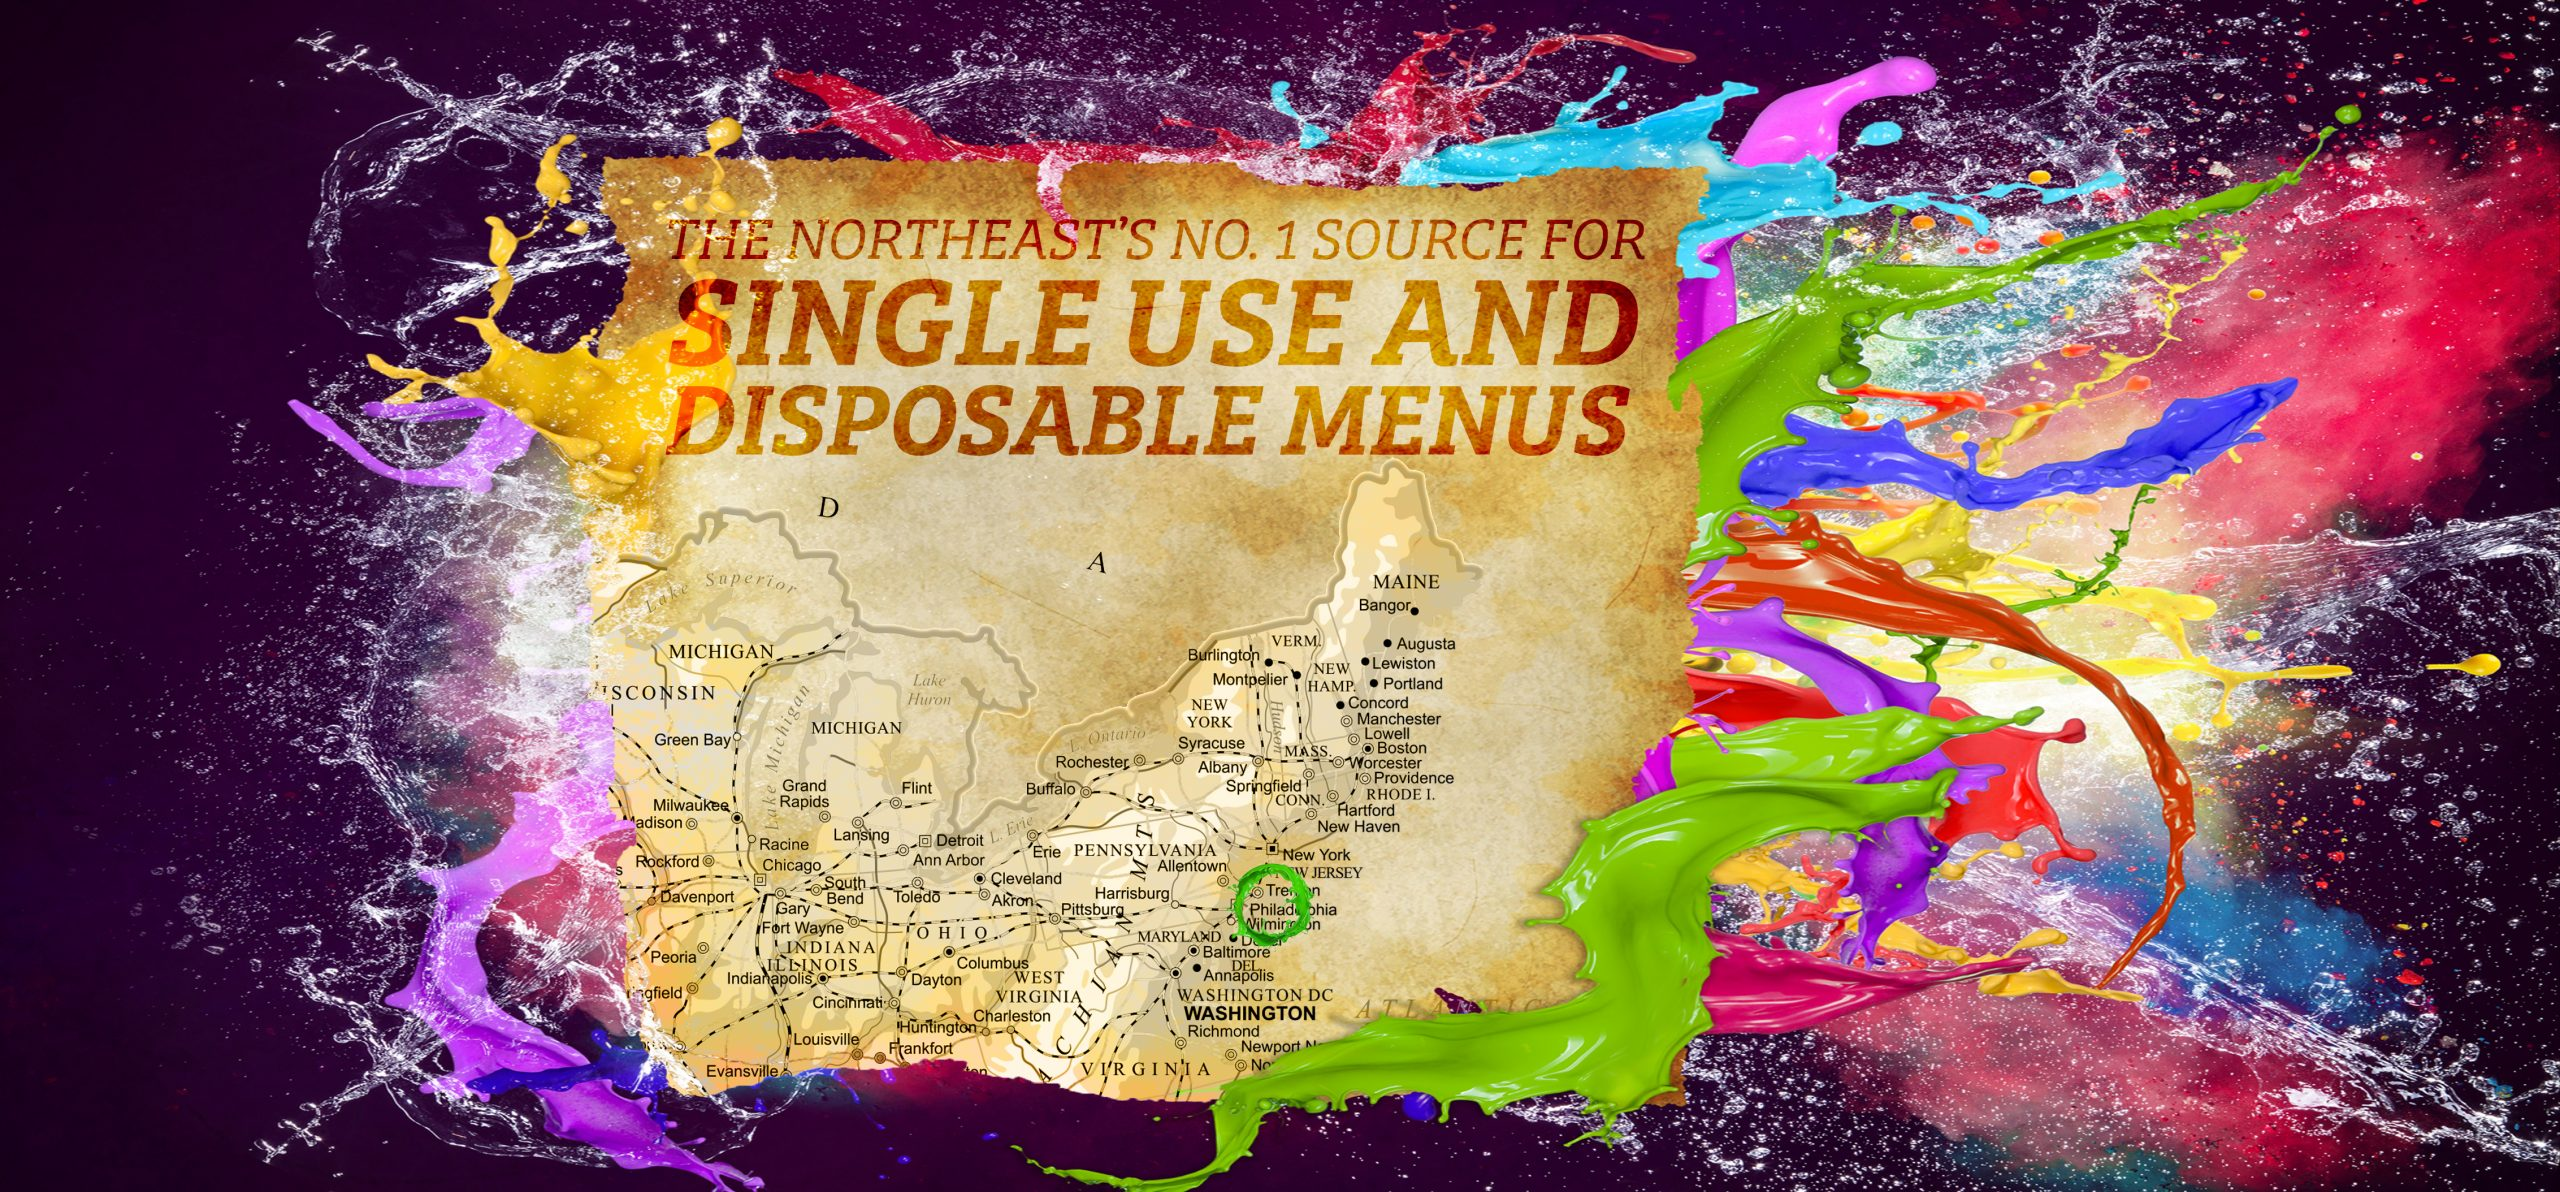 SINGLE USE MENU